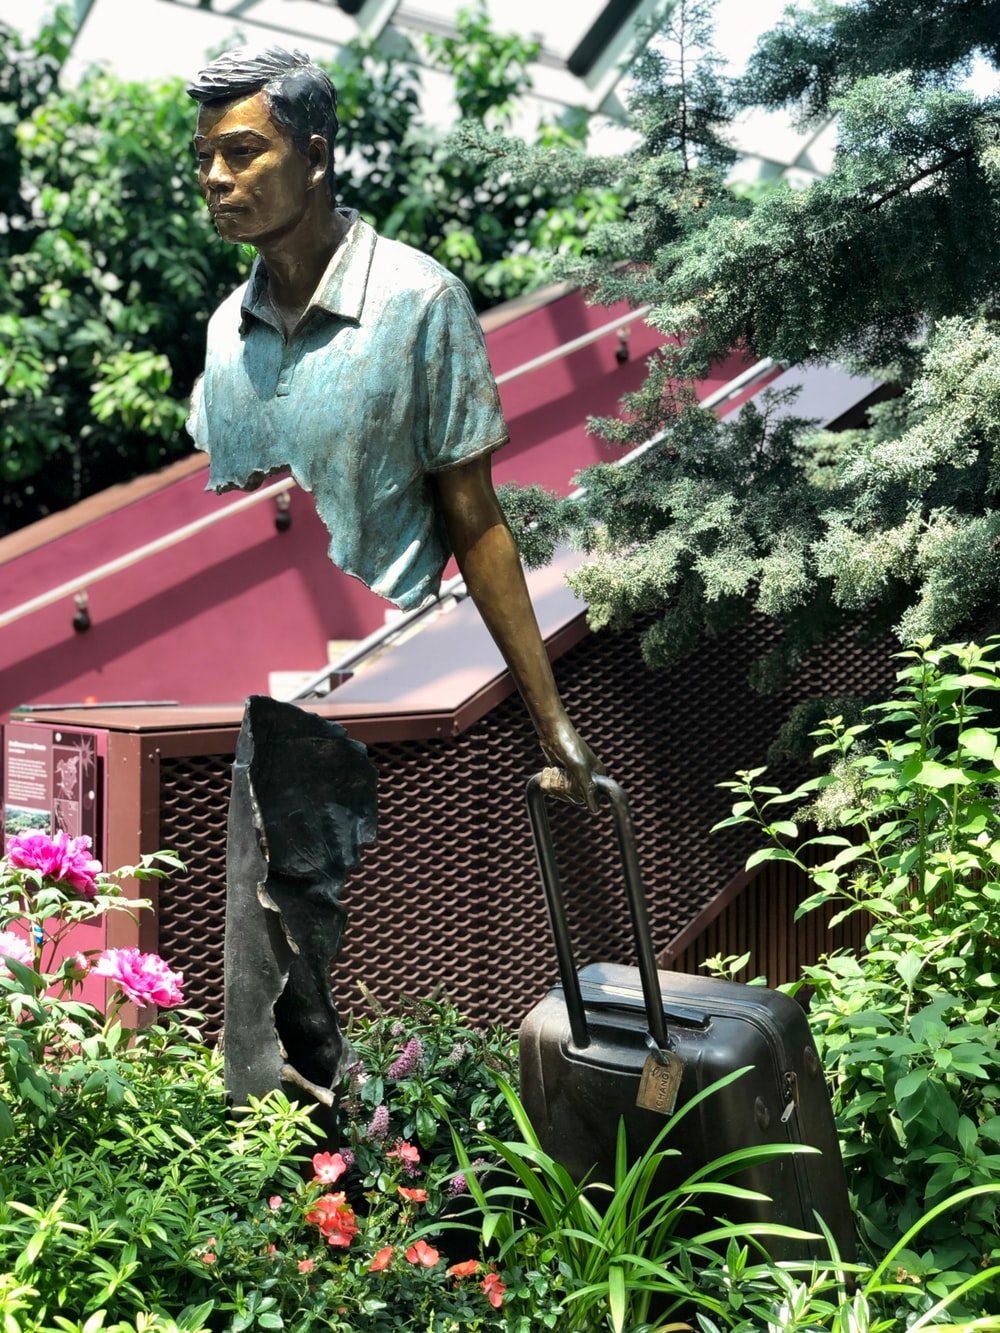 man pulling luggage statue